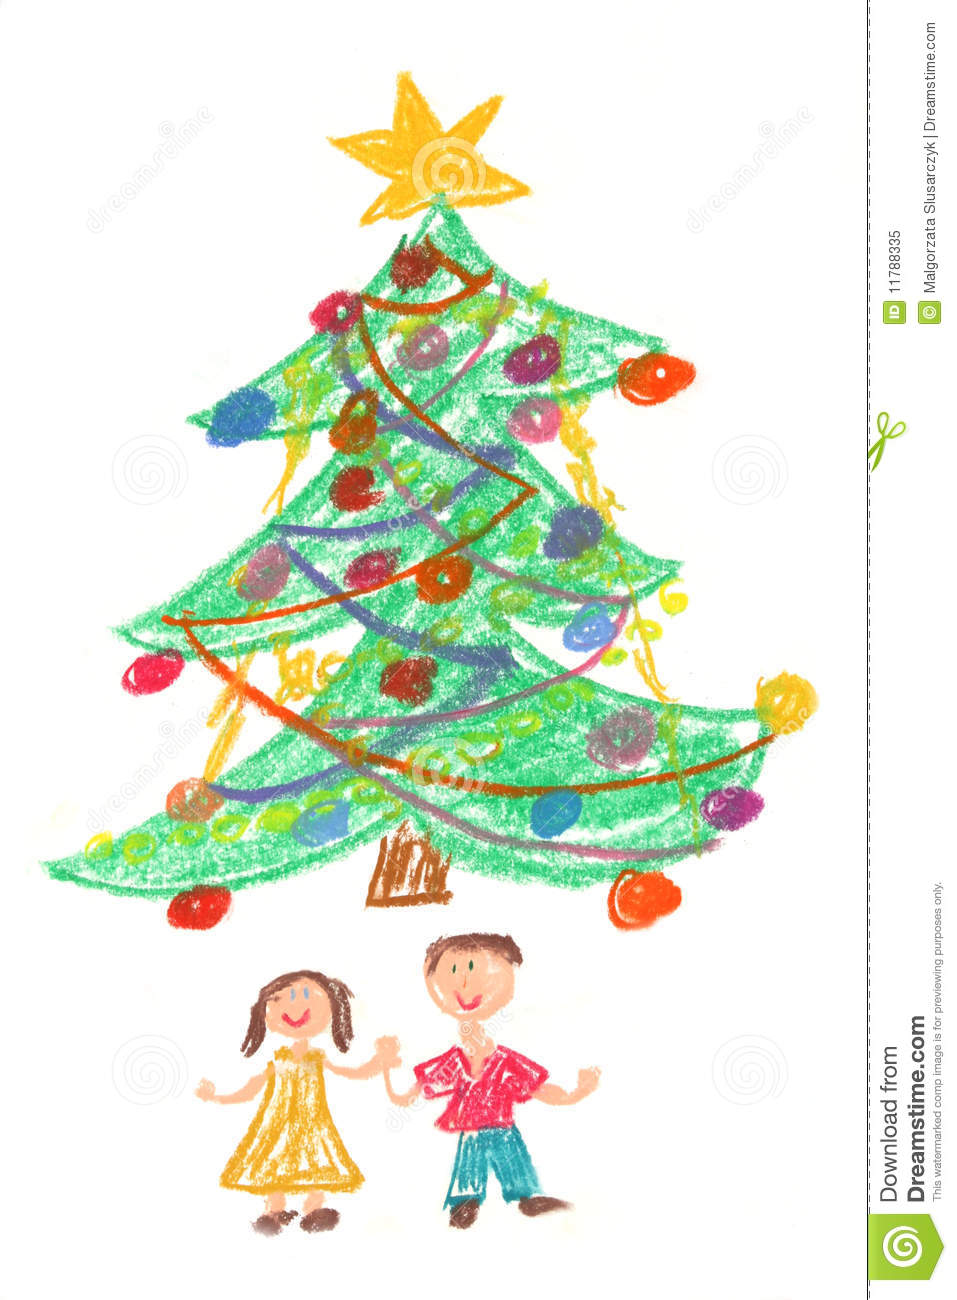 Children And Christmas Tree - Drawing Royalty Free Stock Photo ...